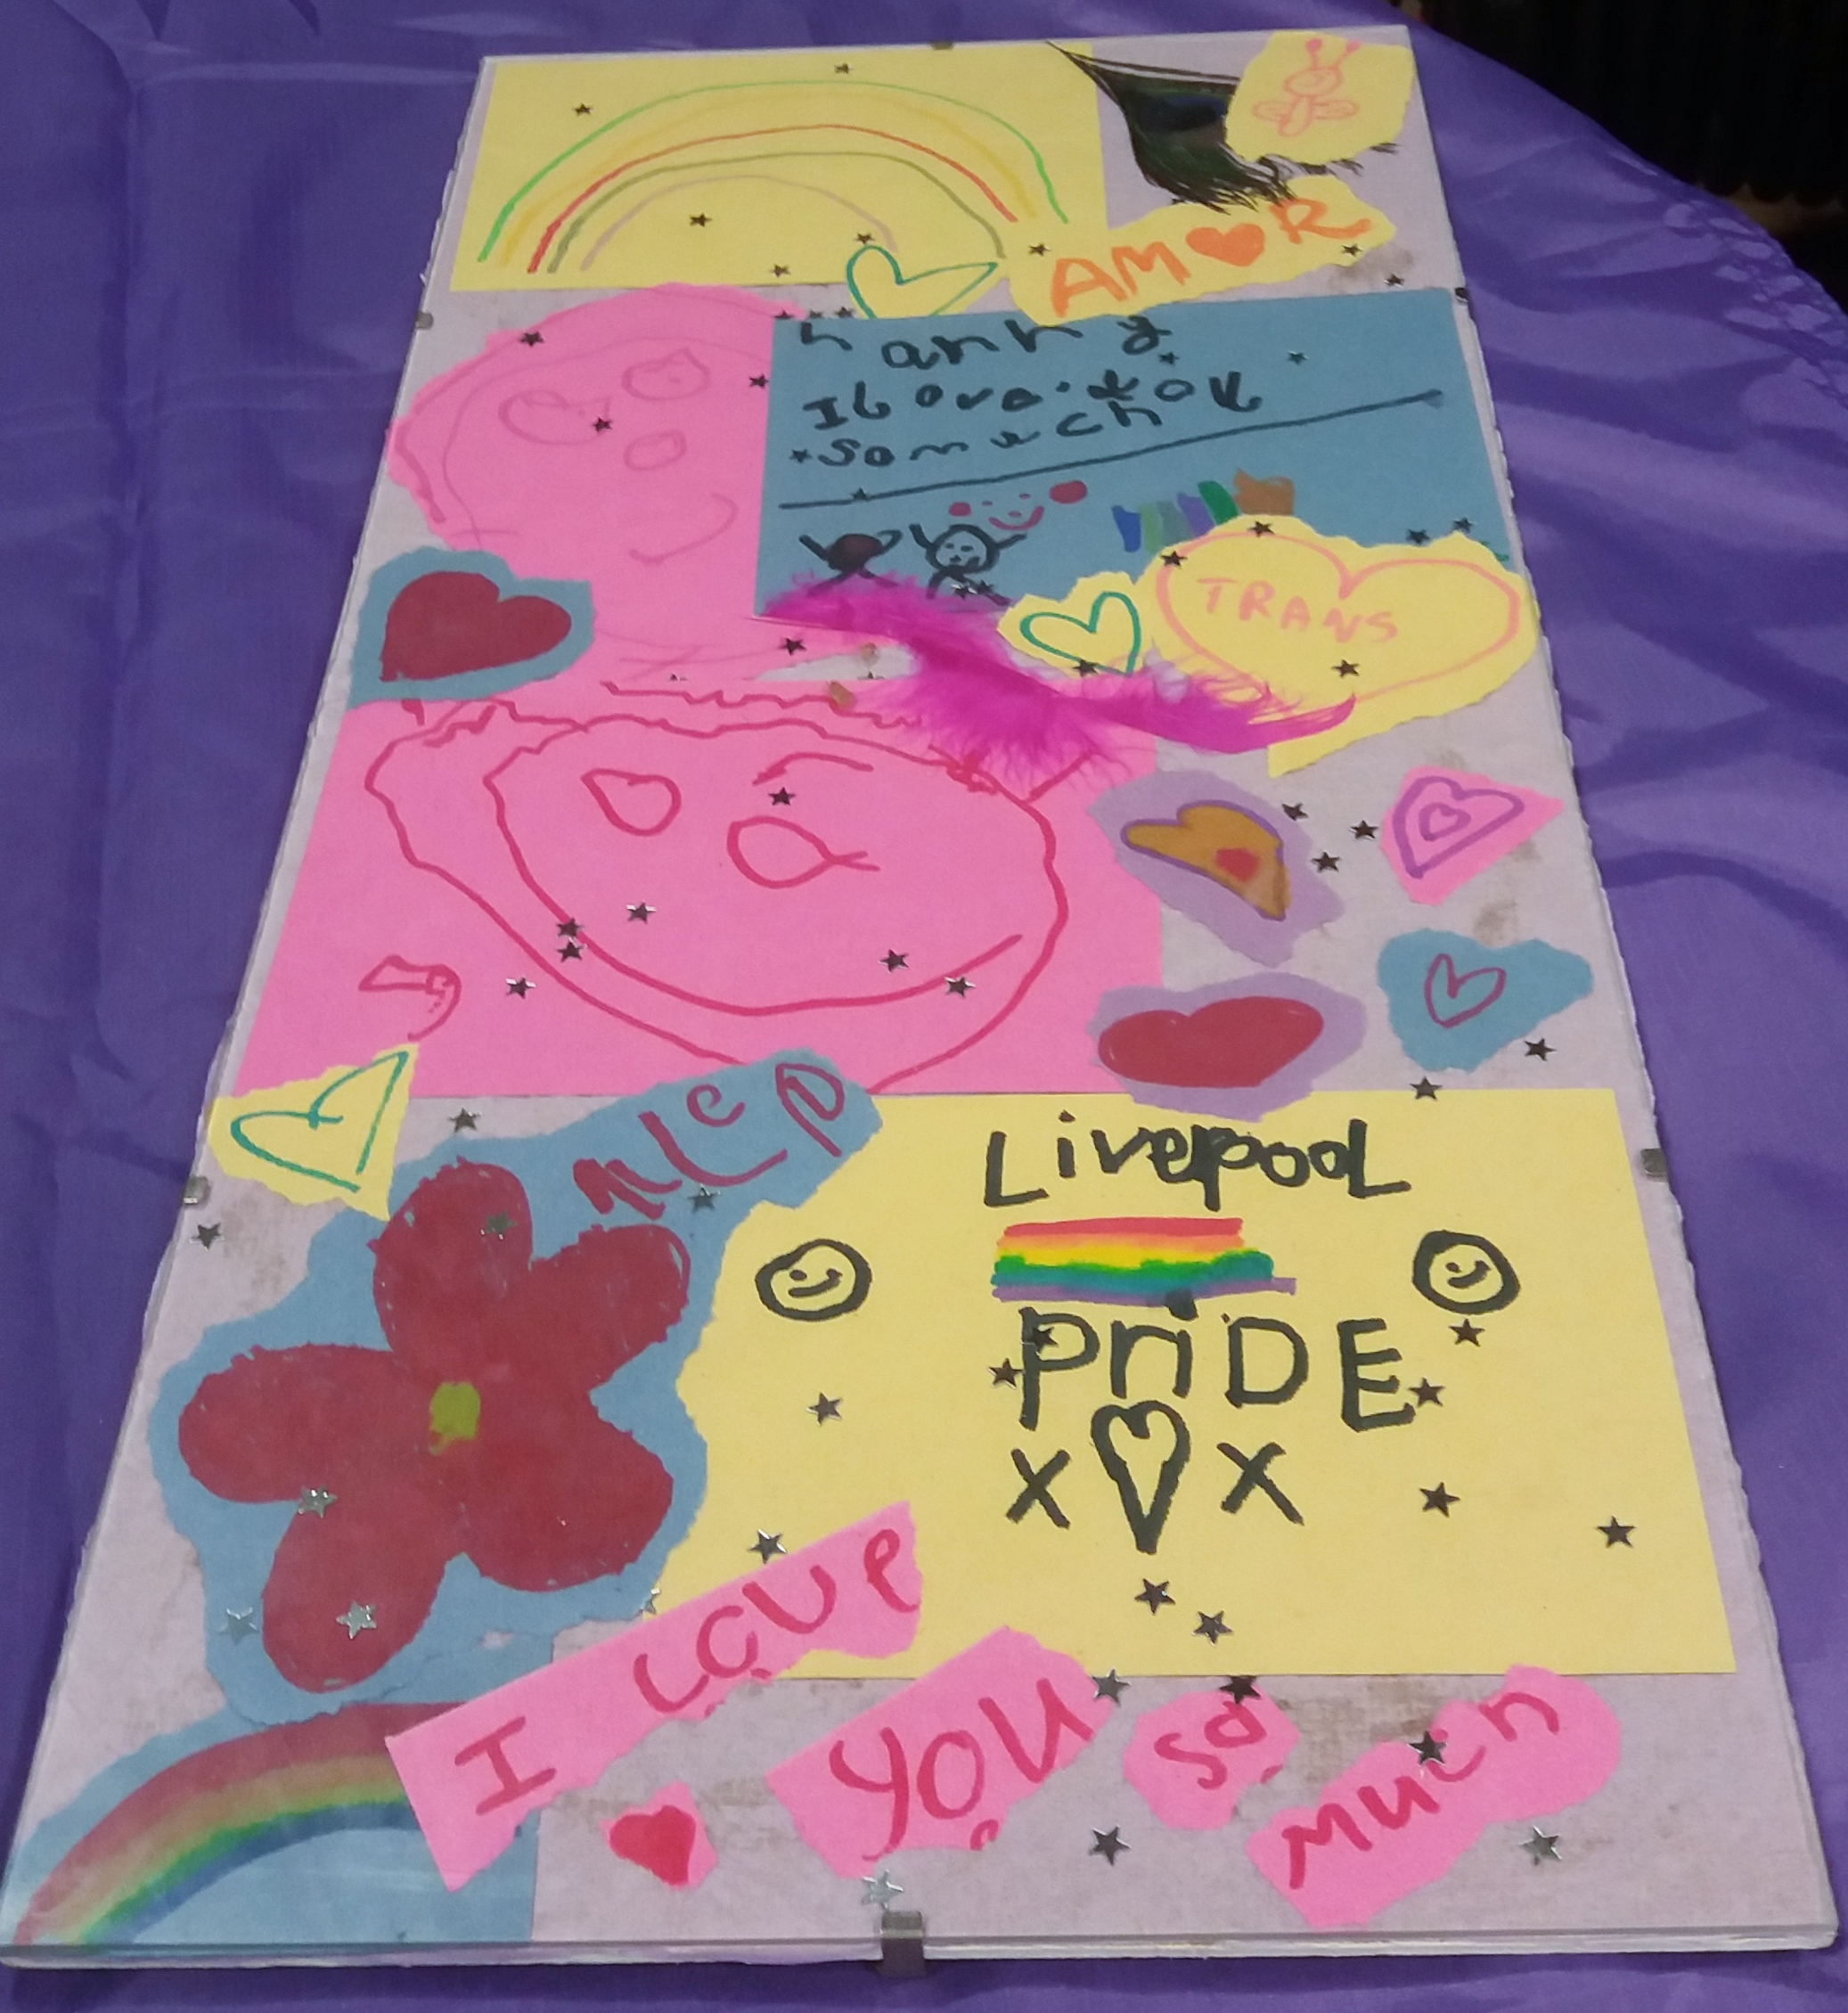 2. Messages and drawings left by children and young people – a sign of hope for the future